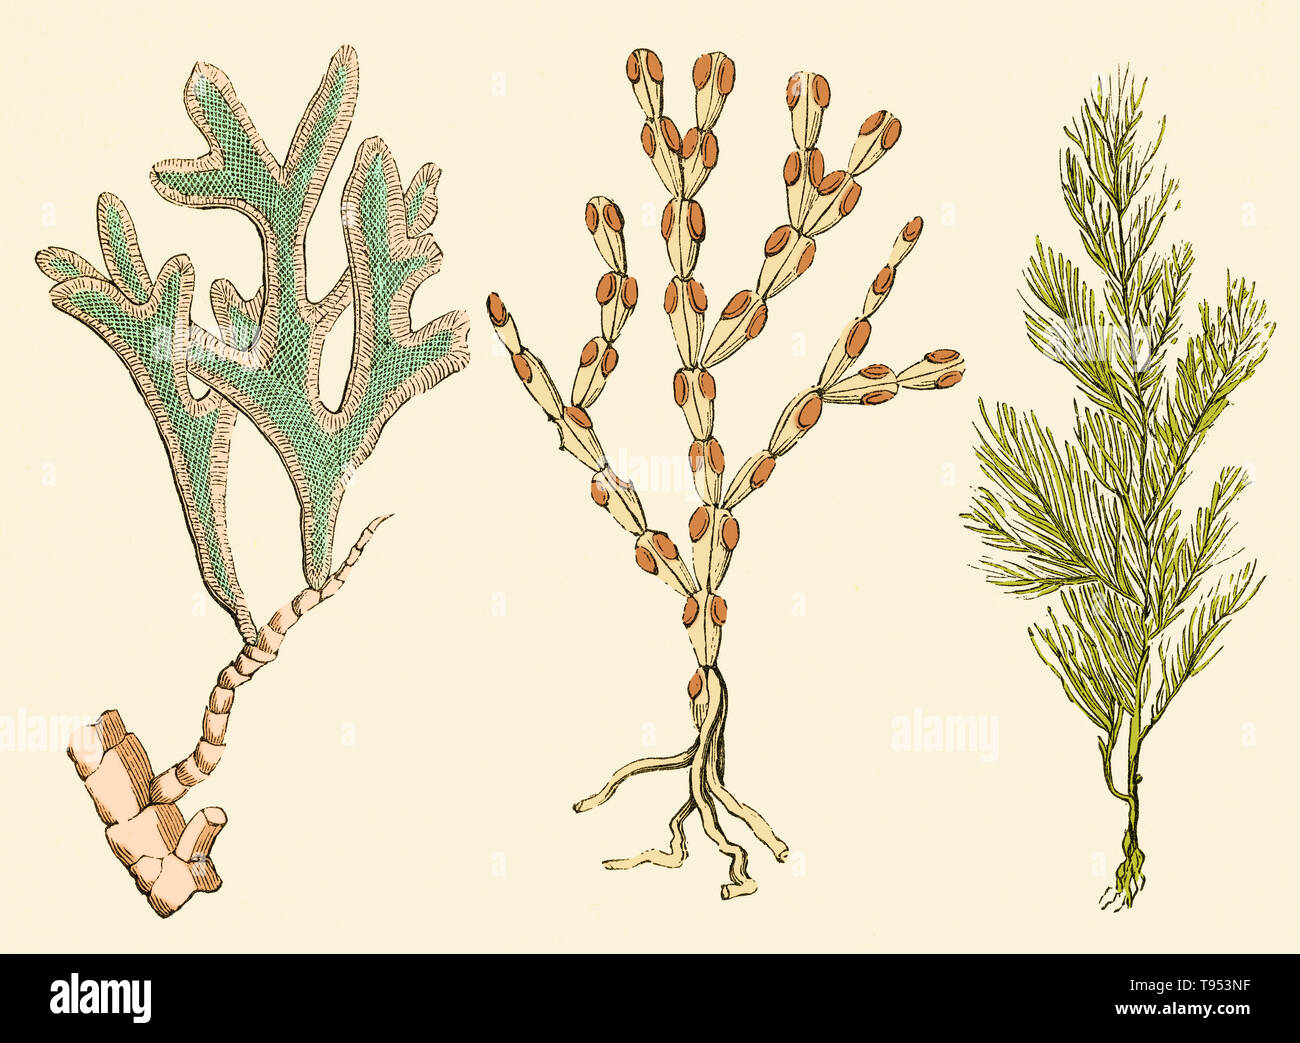 Bryozoans from the Jurassic Period. On the left is Adeona folifera, and on the right, two specimens of Cellaria loriculata.  Illustration from Louis Figuier's The World Before the Deluge, 1867 American edition. - Stock Image